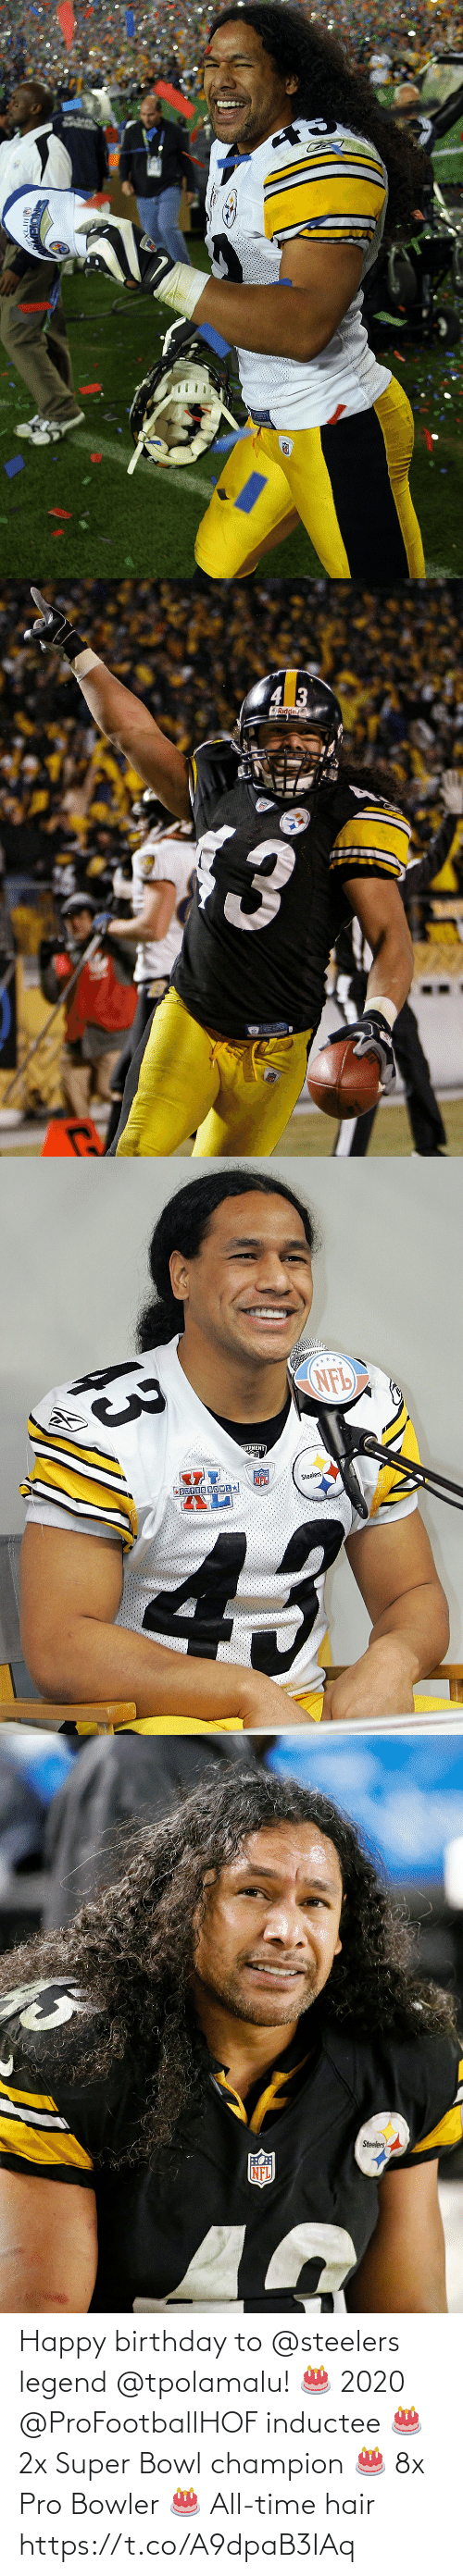 legend: Happy birthday to @steelers legend @tpolamalu! 🎂 2020 @ProFootballHOF inductee 🎂 2x Super Bowl champion 🎂 8x Pro Bowler 🎂 All-time hair https://t.co/A9dpaB3IAq